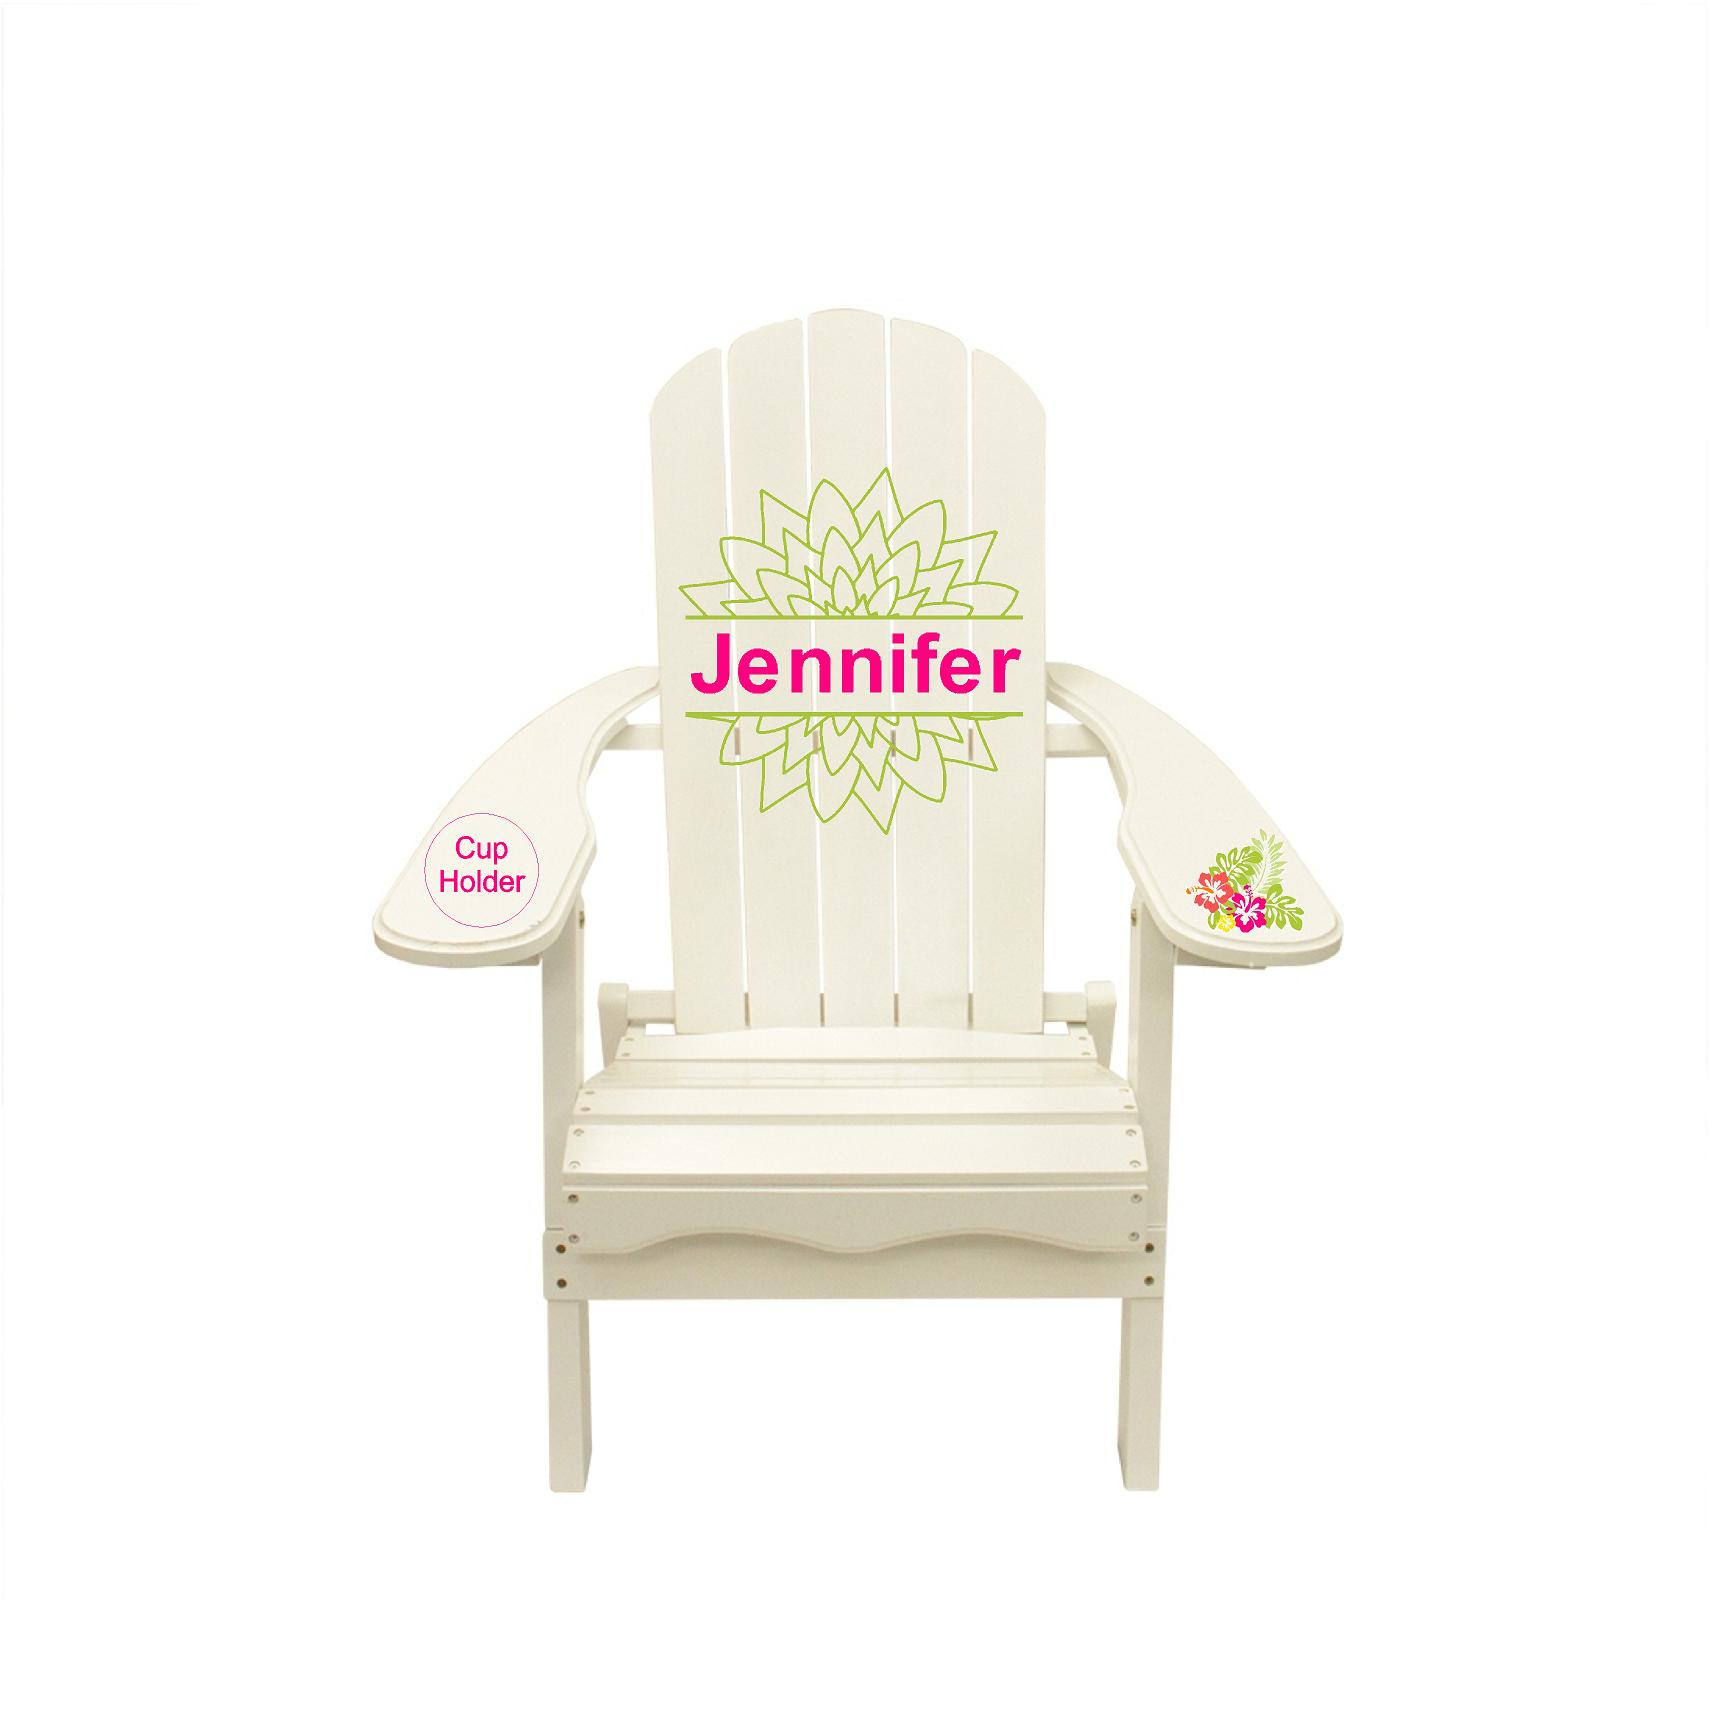 Jennifer Name Mock Up Graphic Decal Adirondack Lounge Chair